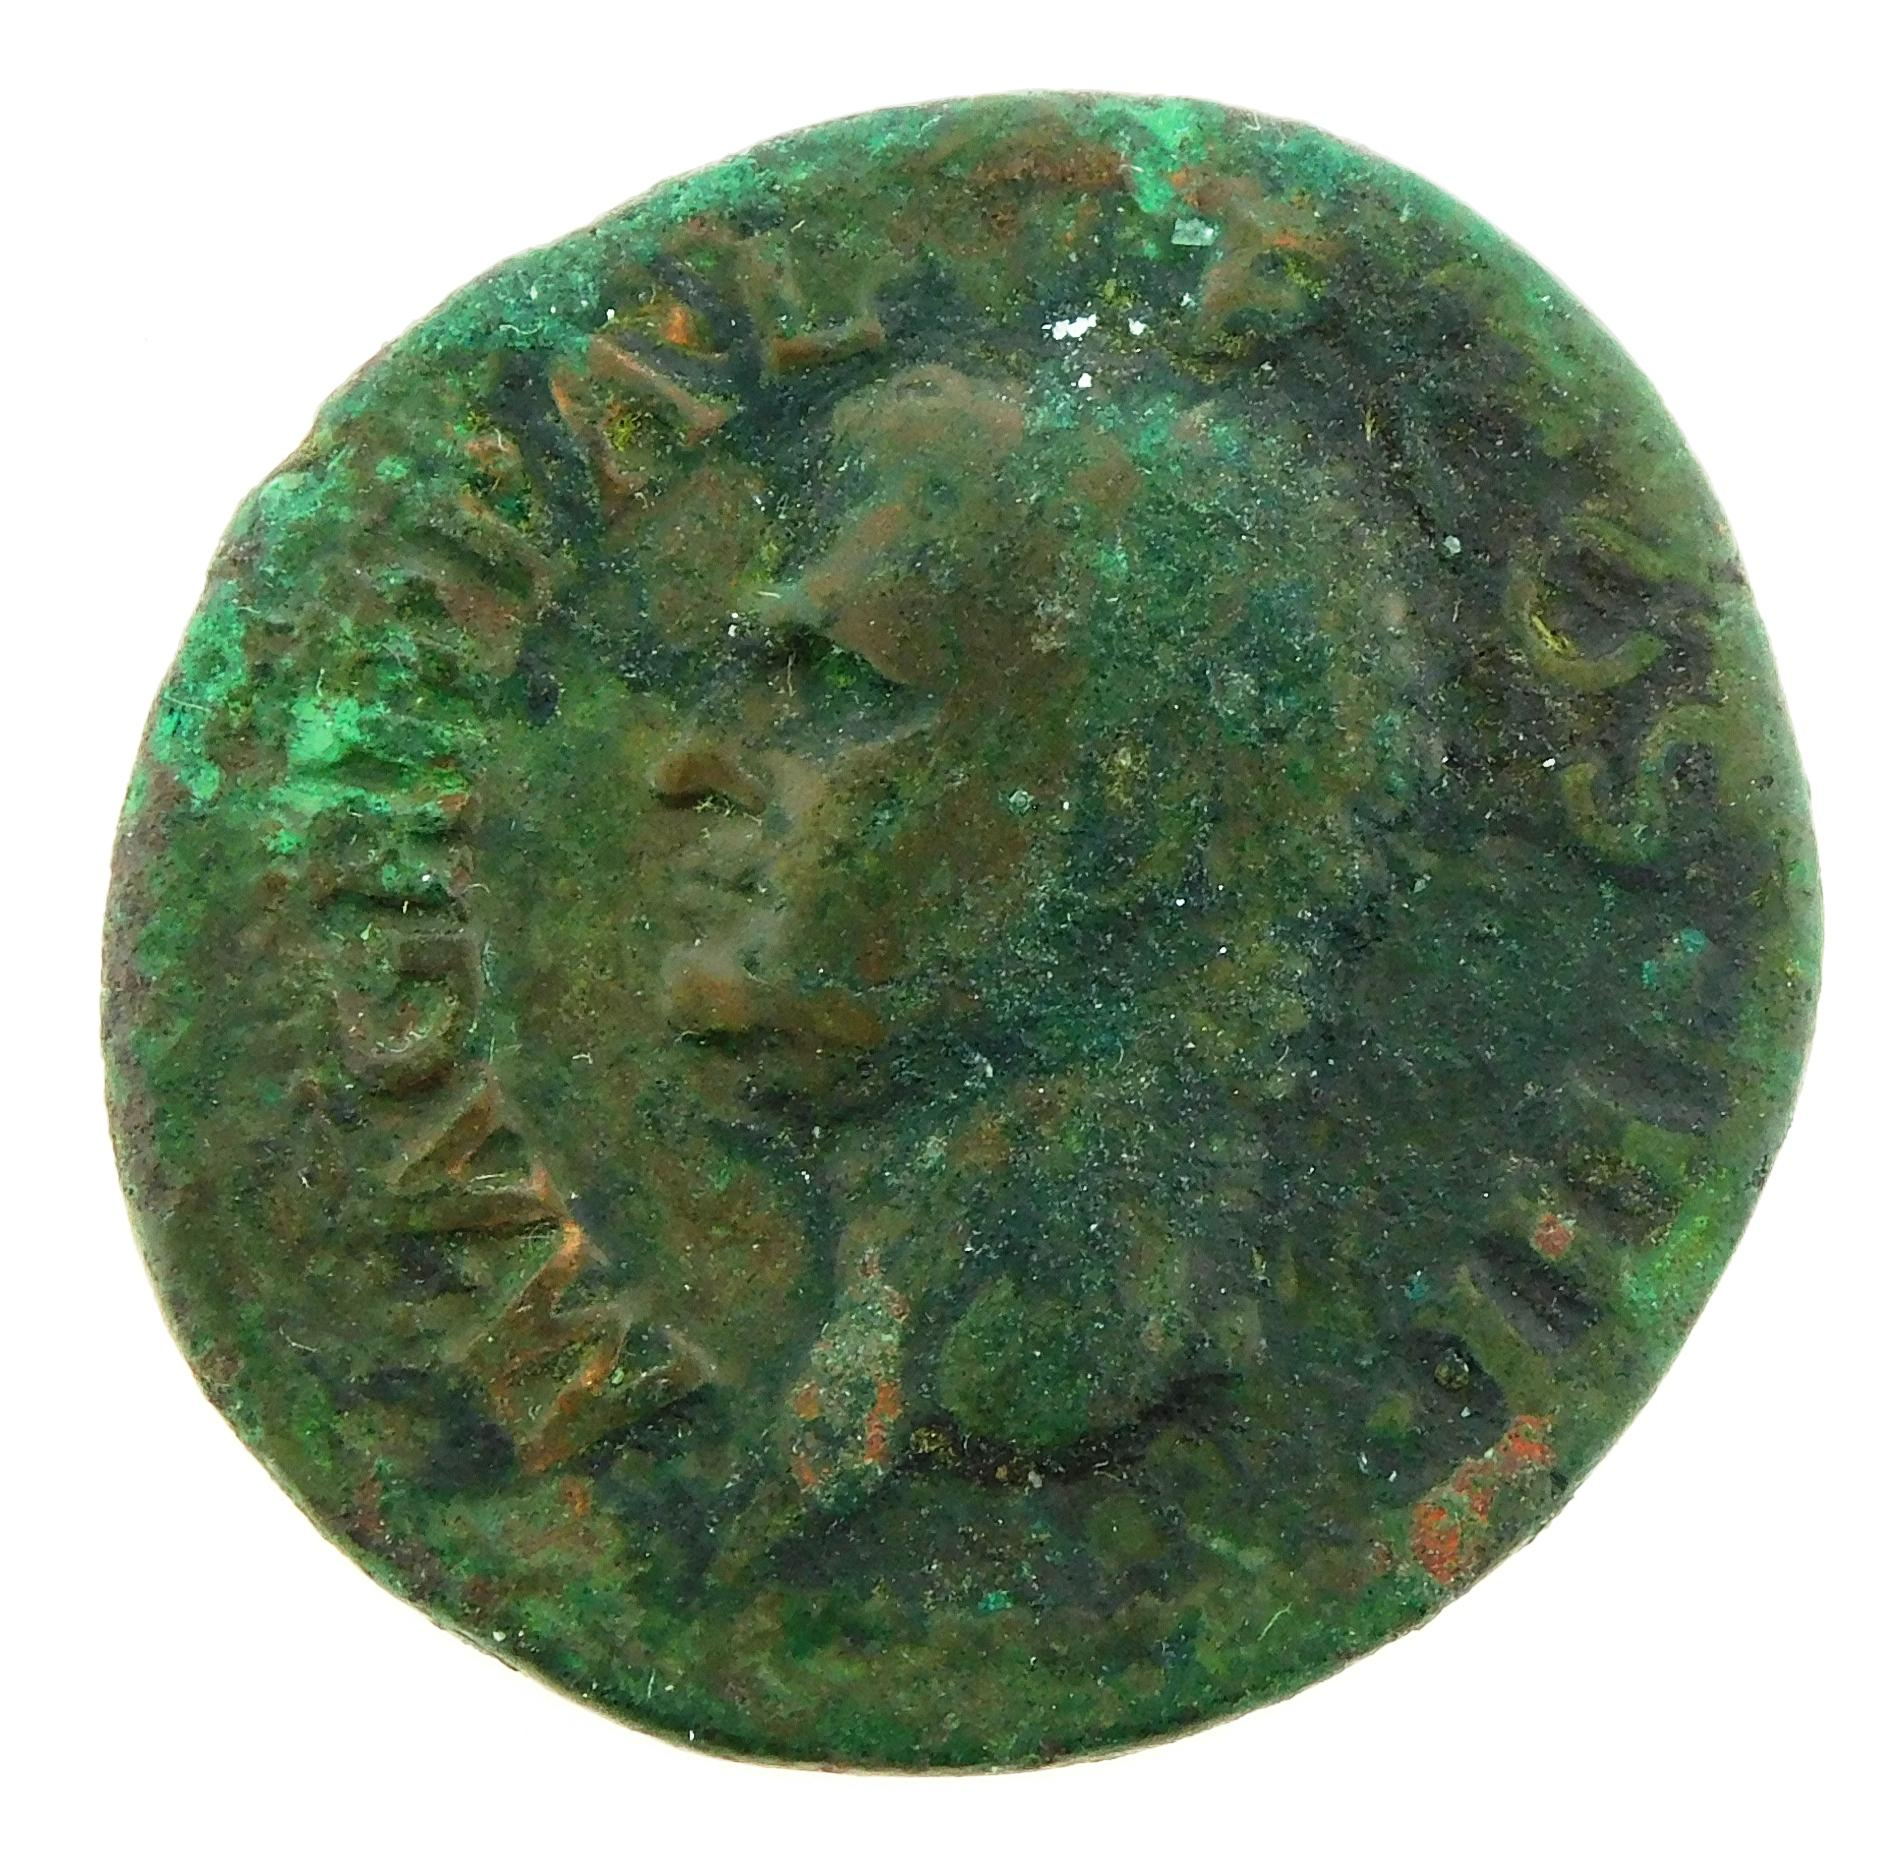 COIN: Ancient Rome. 37-41 AD M. Agrippa AE As Struck under Caligula. Neptune left with Dolphin and Trident. gF with some excess gree...